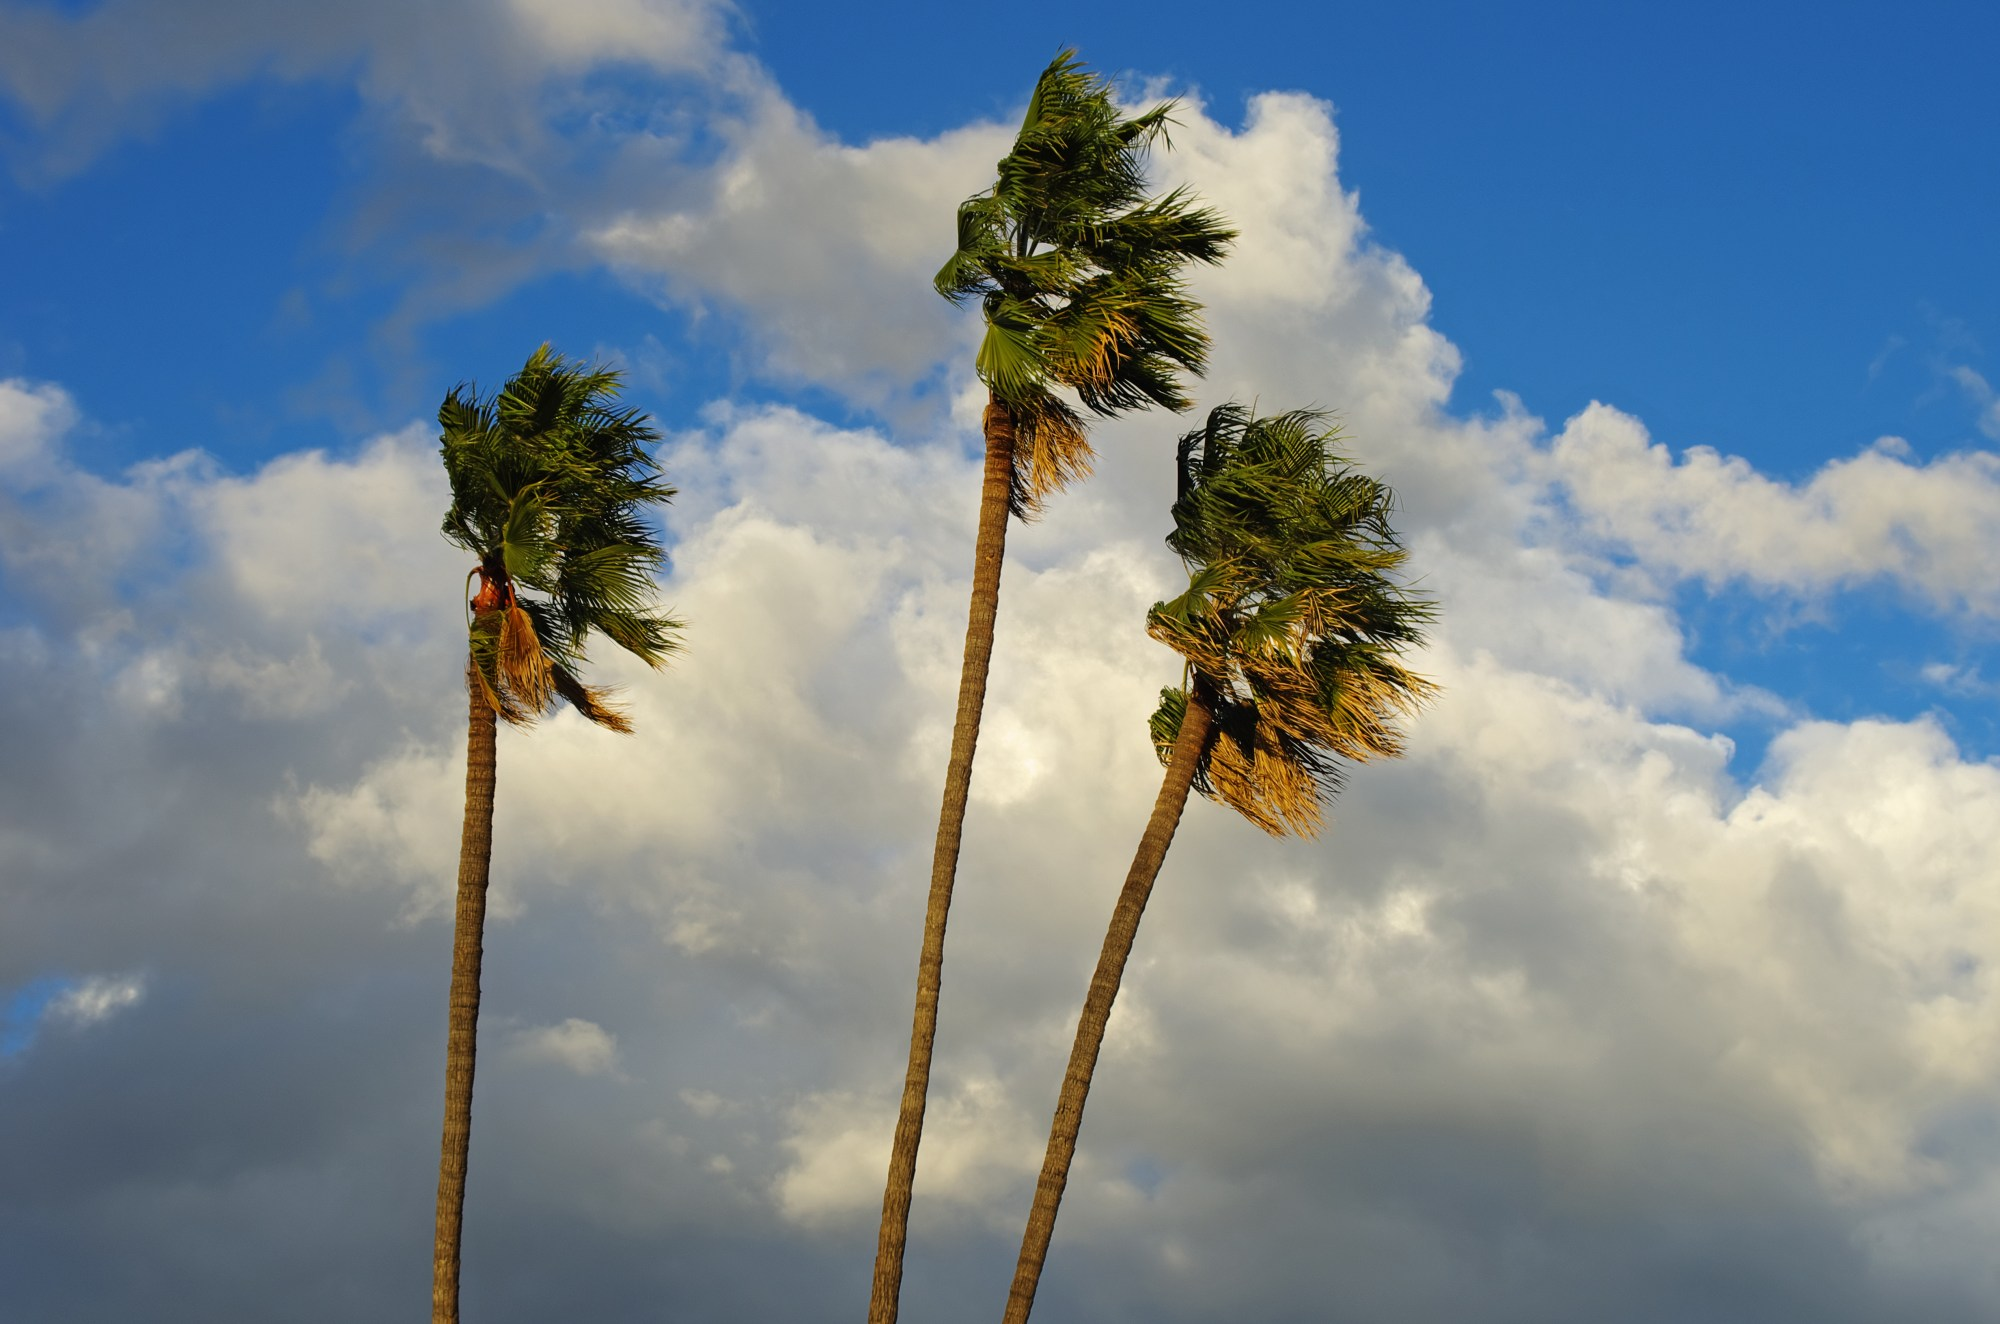 This file photo was taken on Dec. 18, 2012, in Pasadena during an afternoon of strong winds. (Getty Images)